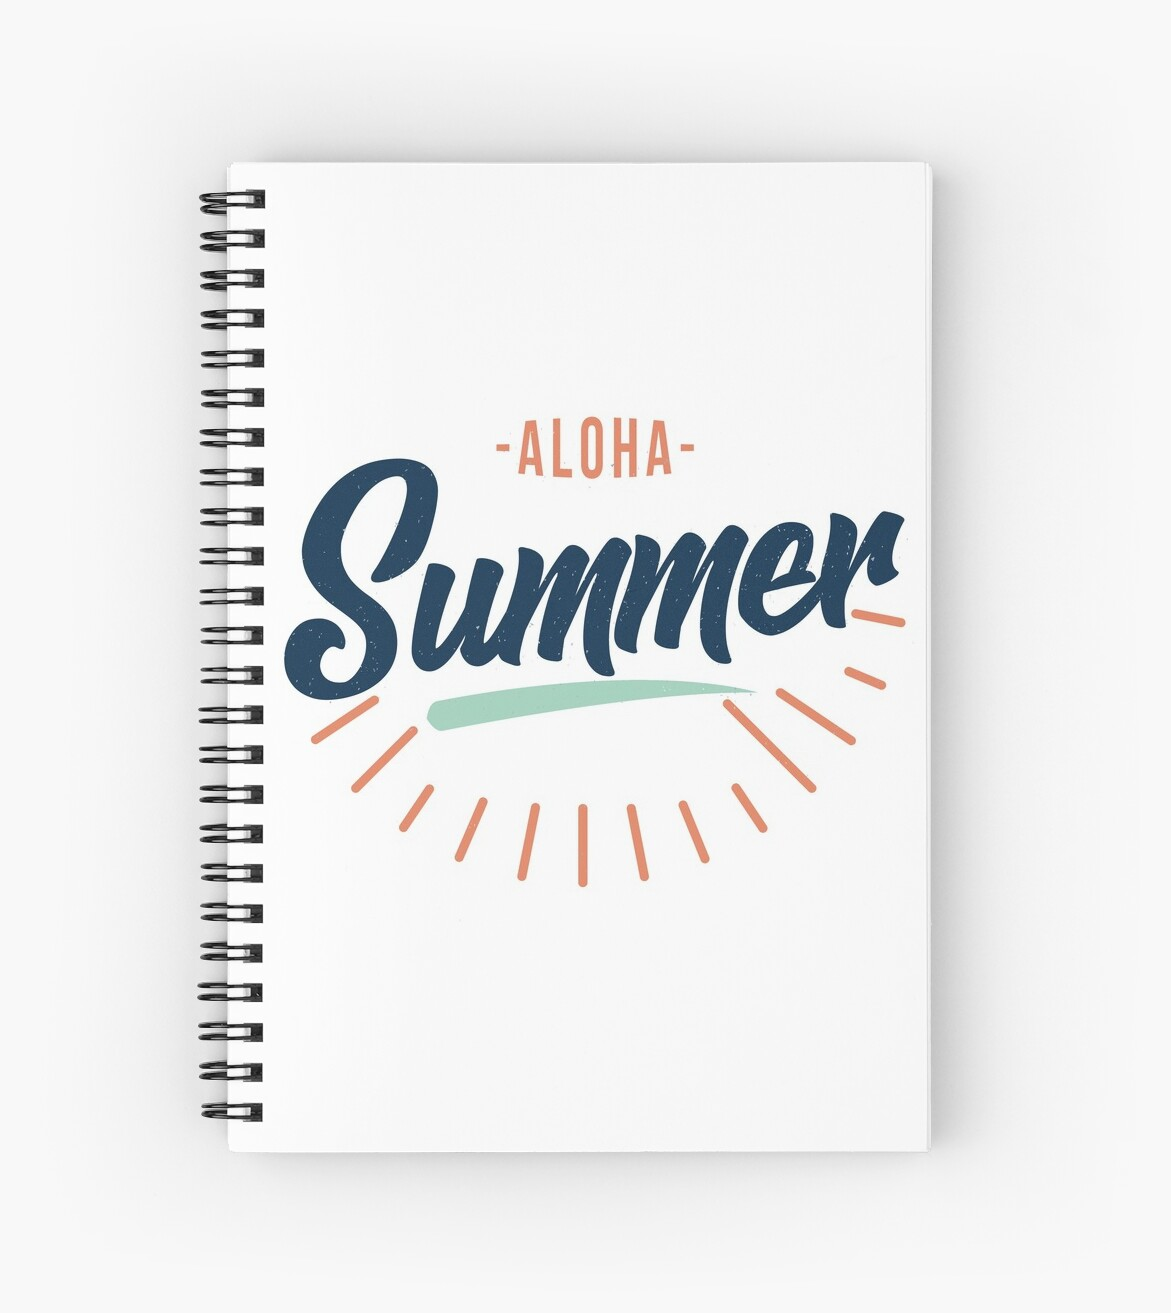 Aloha Summer Funny Vacation Hawaii Quotes White Mens Womens Tee Shirt T Shirt Spiral Notebook By Ayoubr